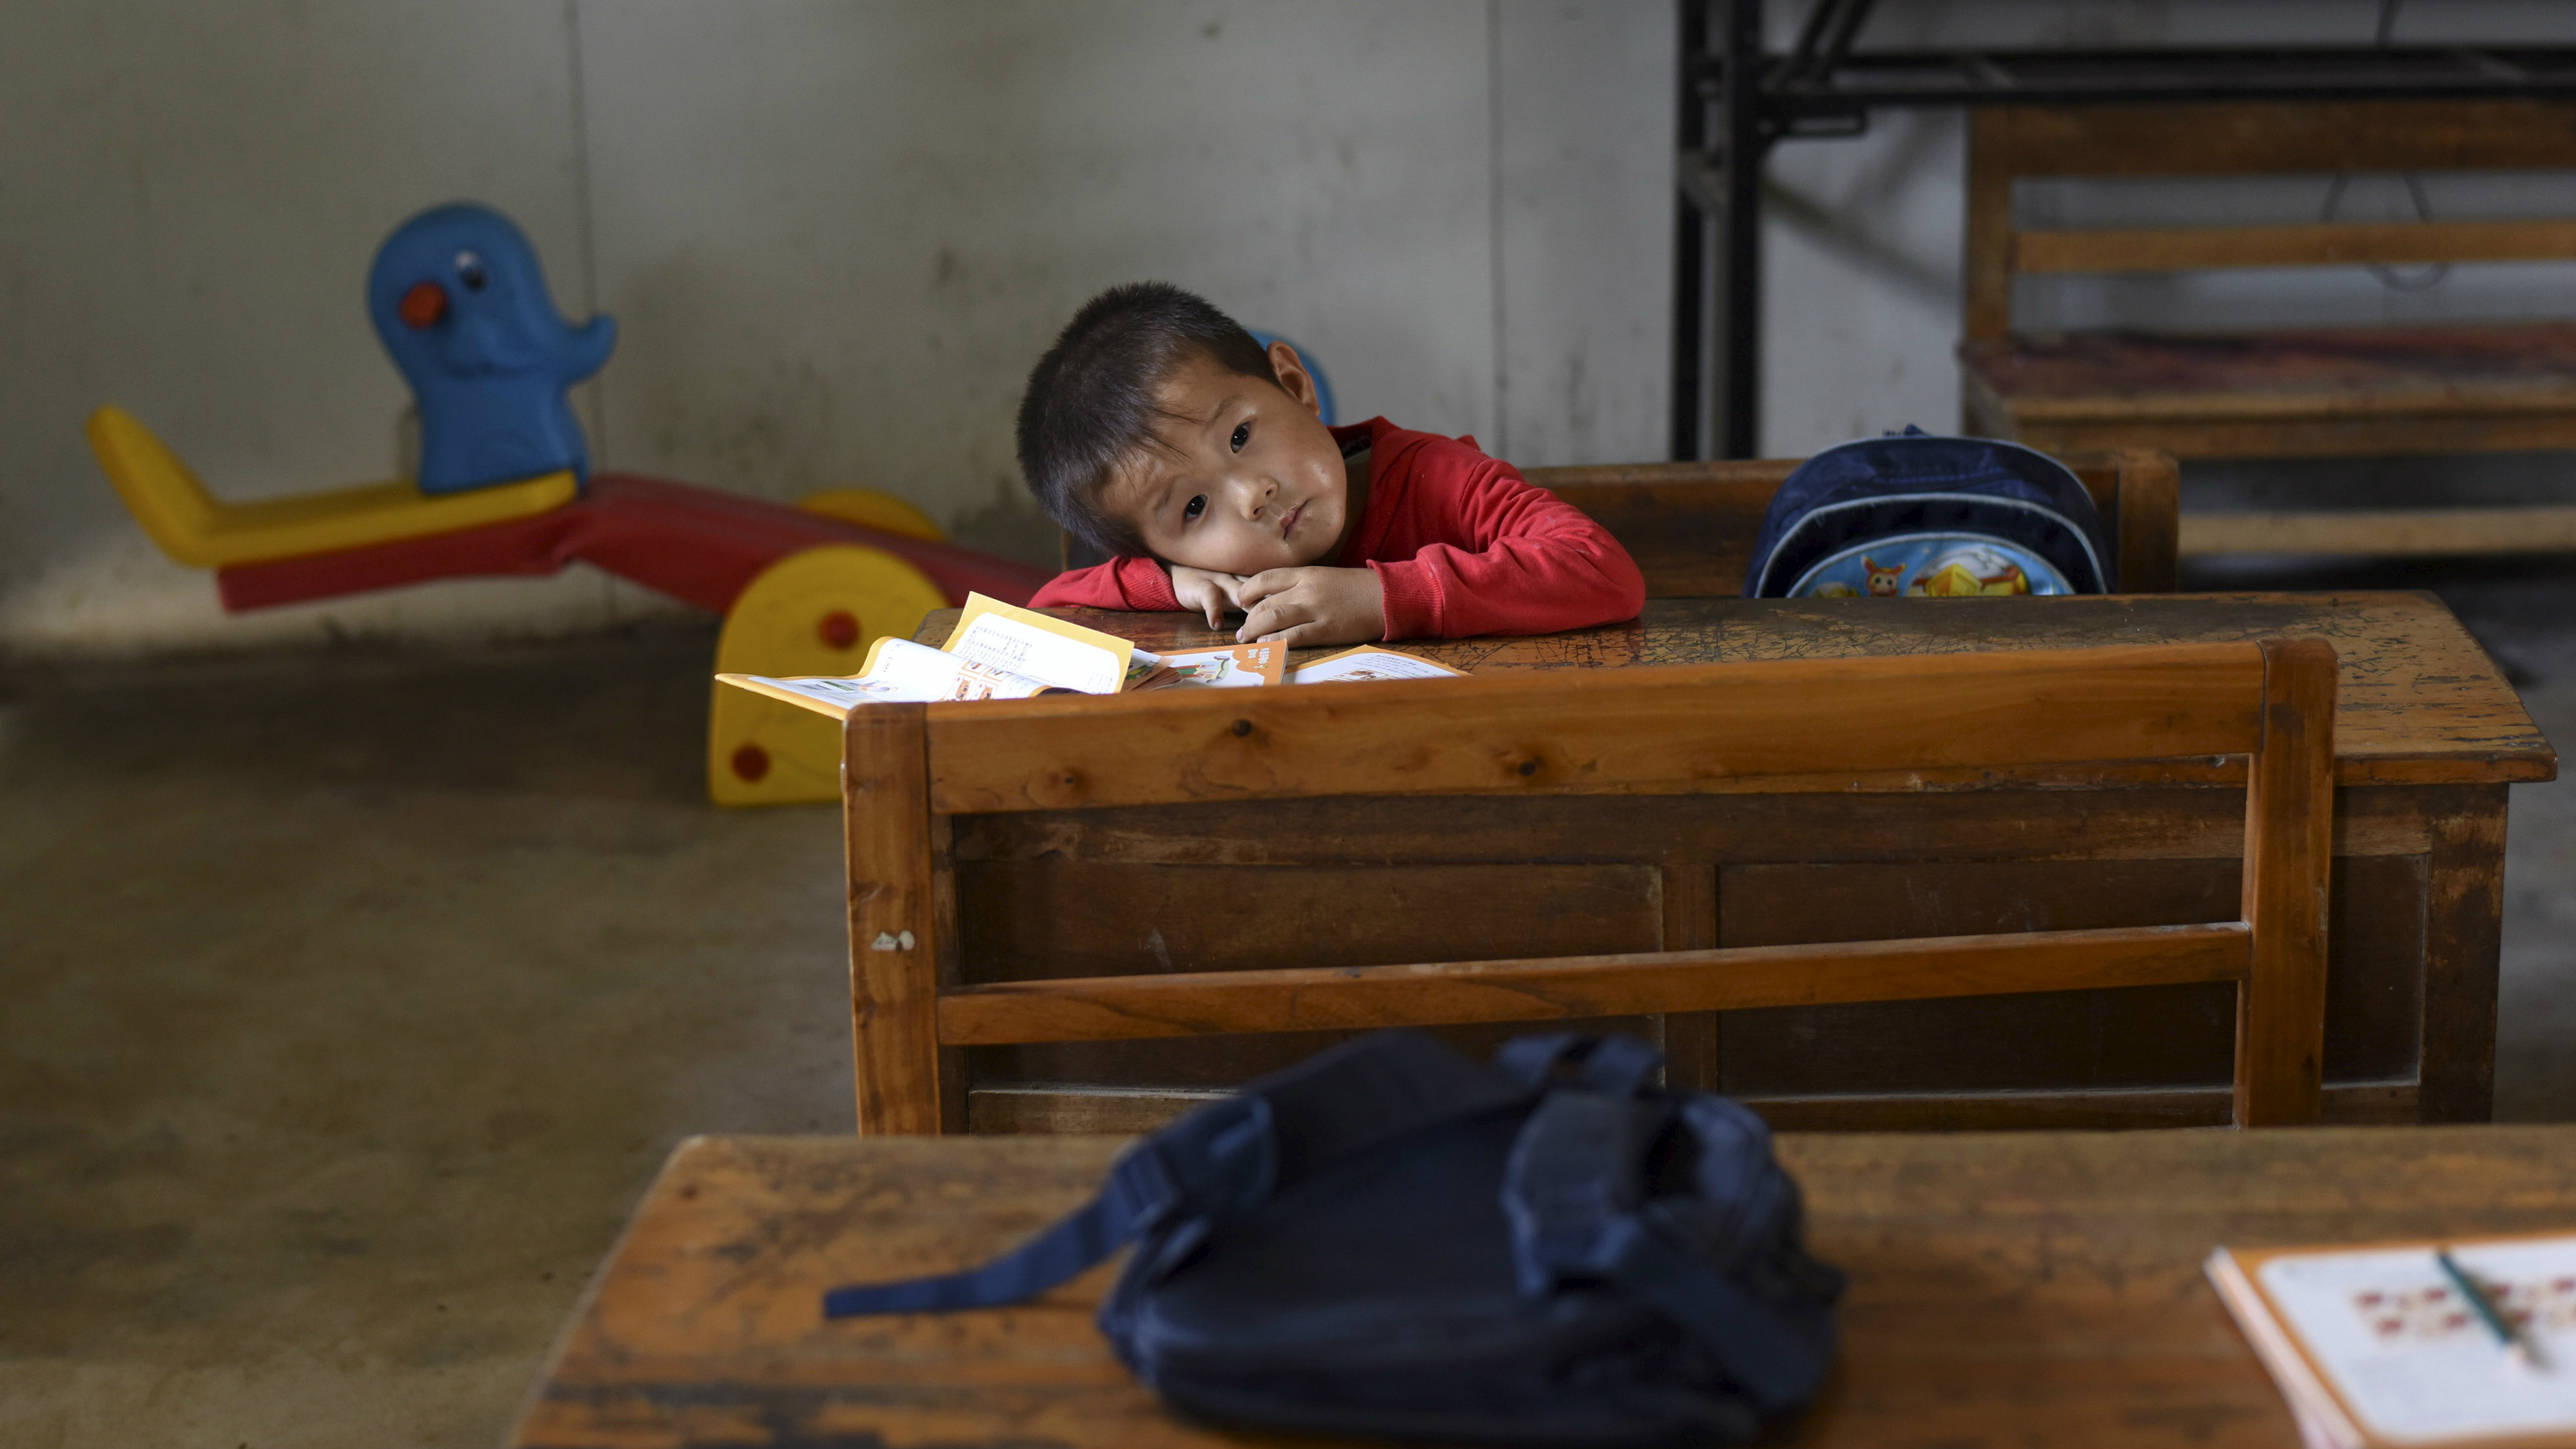 Brookings created a blueprint to help countries around the world brookings created a blueprint to help countries around the world radically improve education quartz malvernweather Choice Image